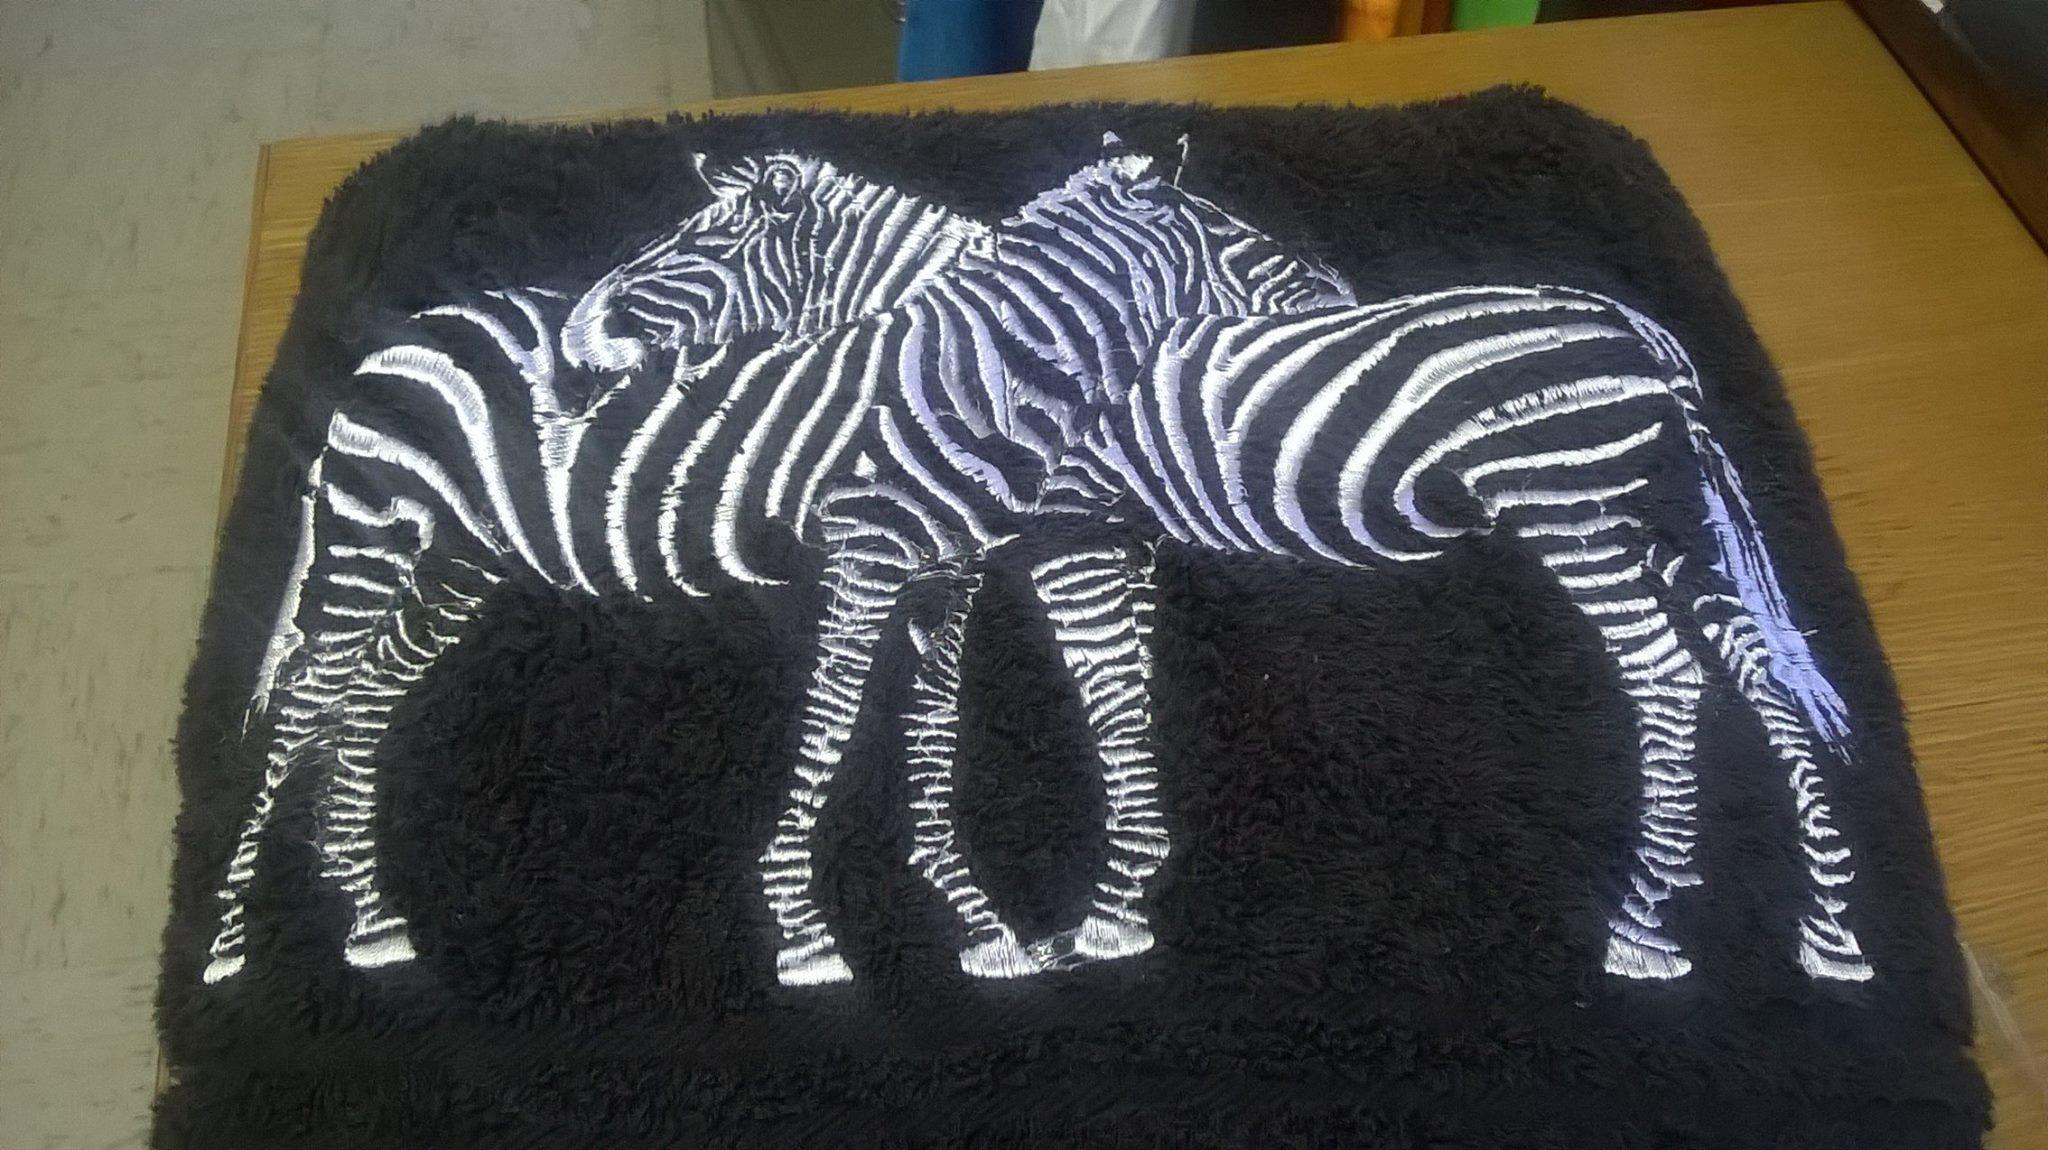 Two zebras free embroidery design